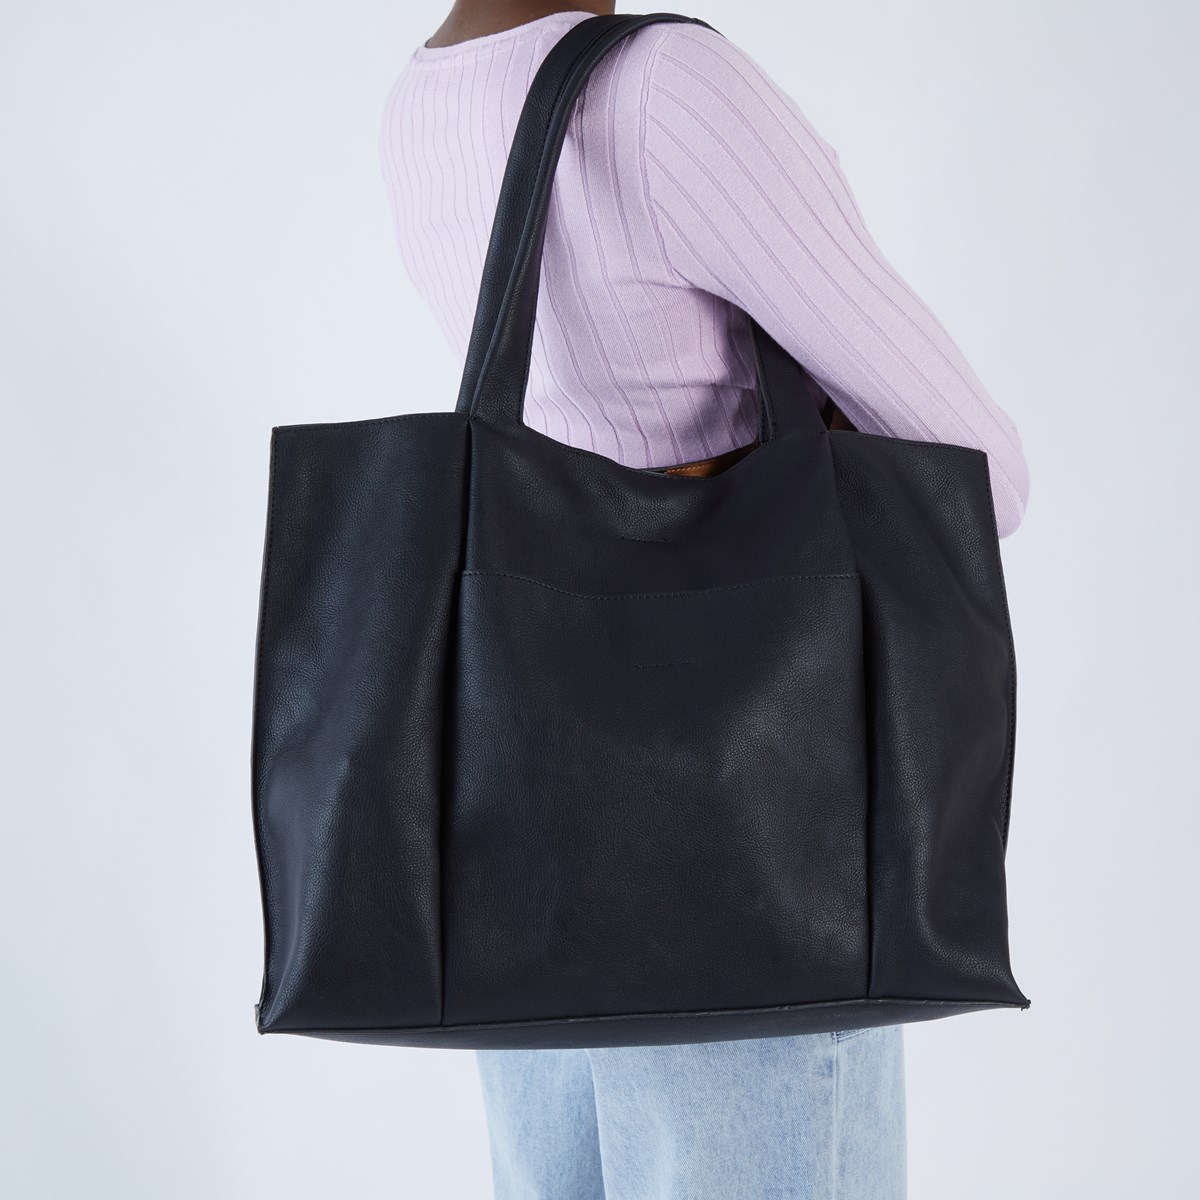 Meg Tote Bag in Black